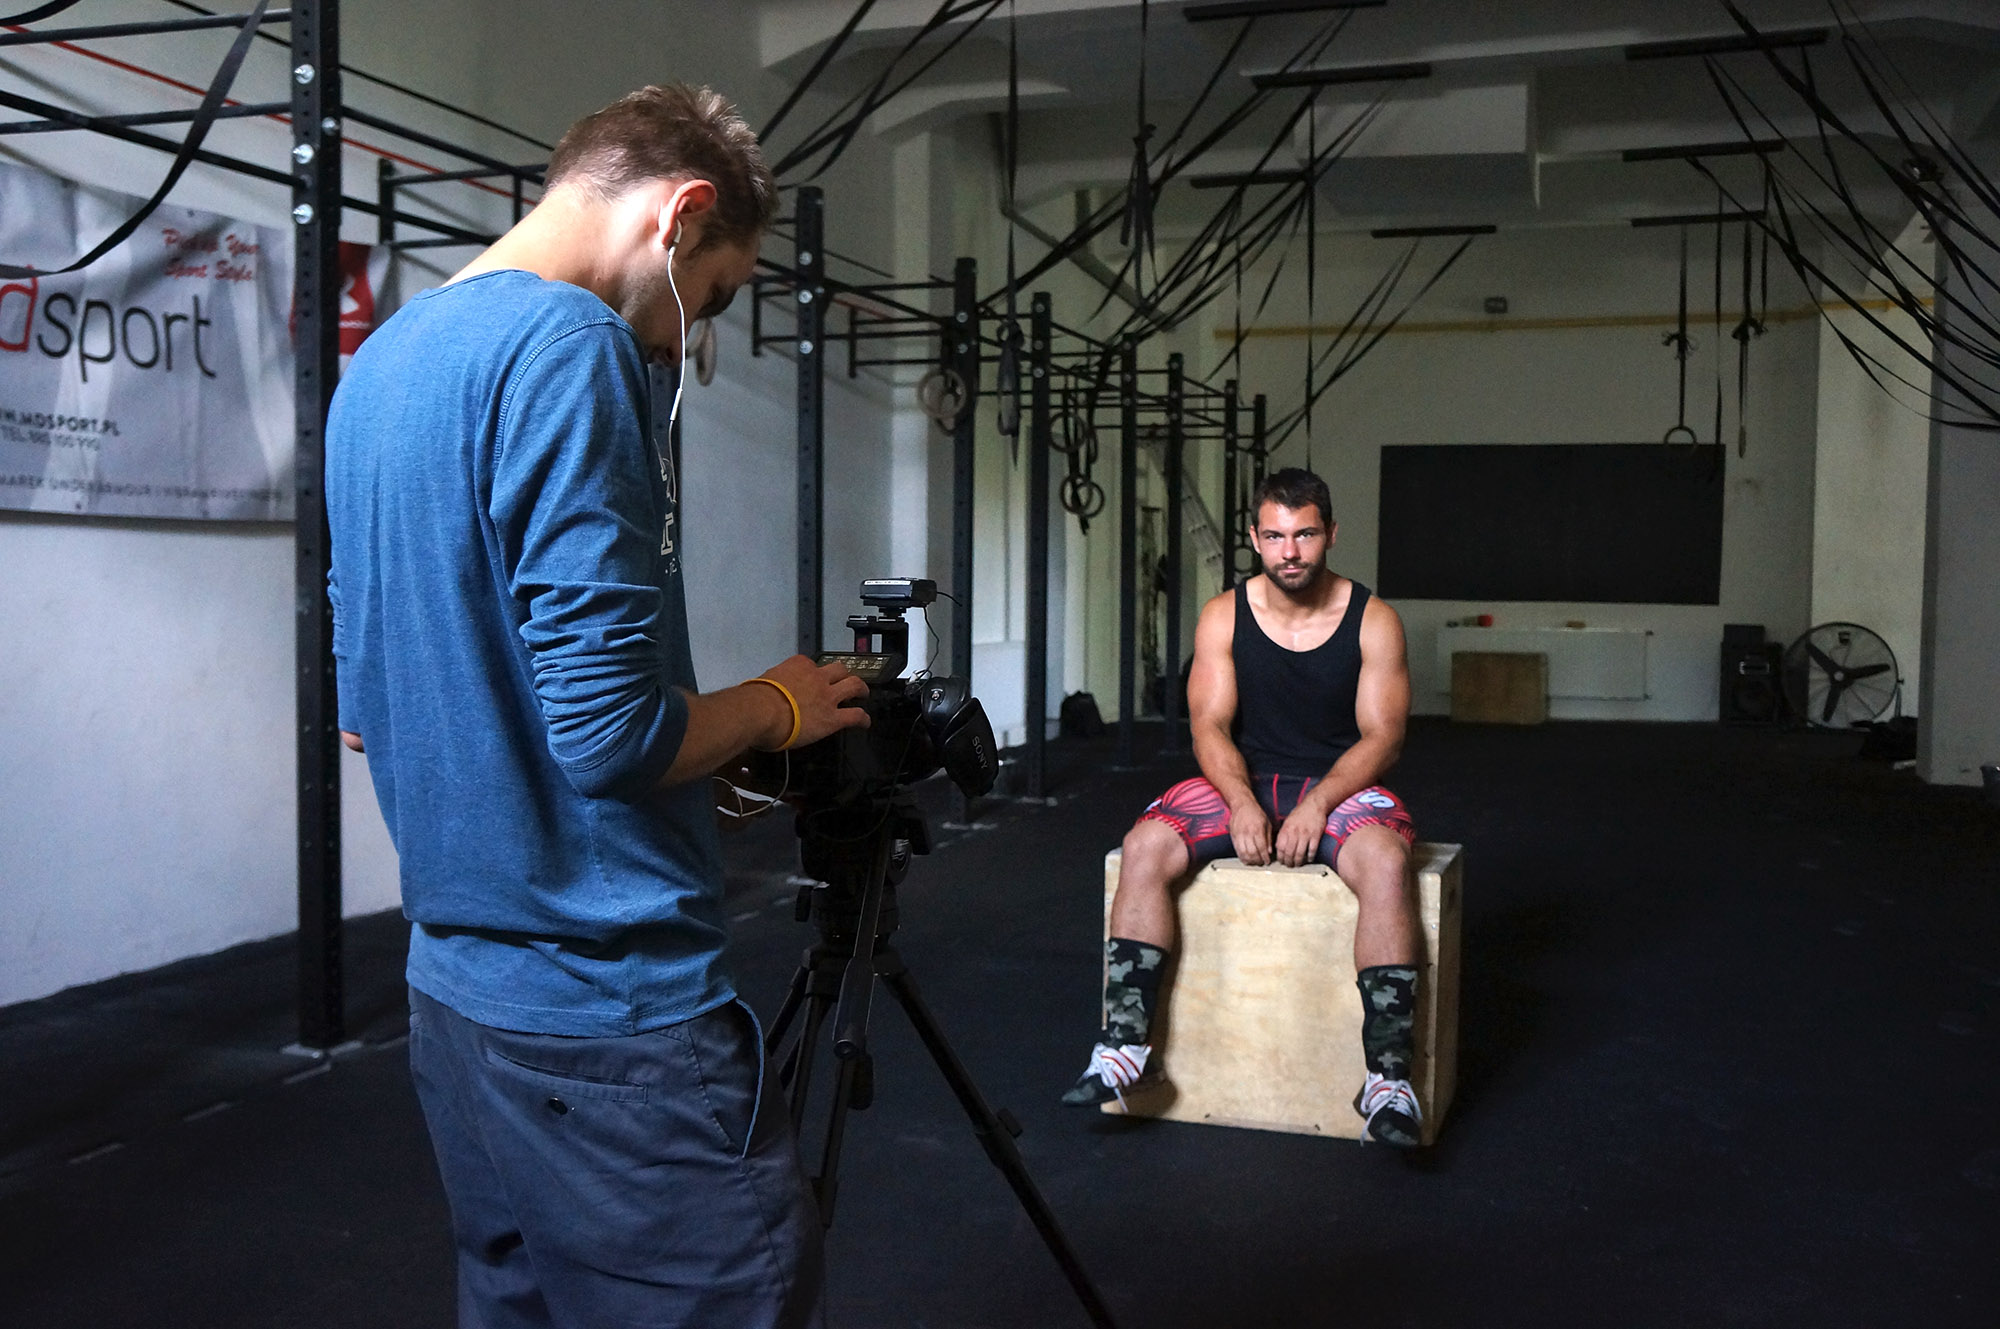 Passion for crossfit training: Adrian Kremski is being recorded for the STP video